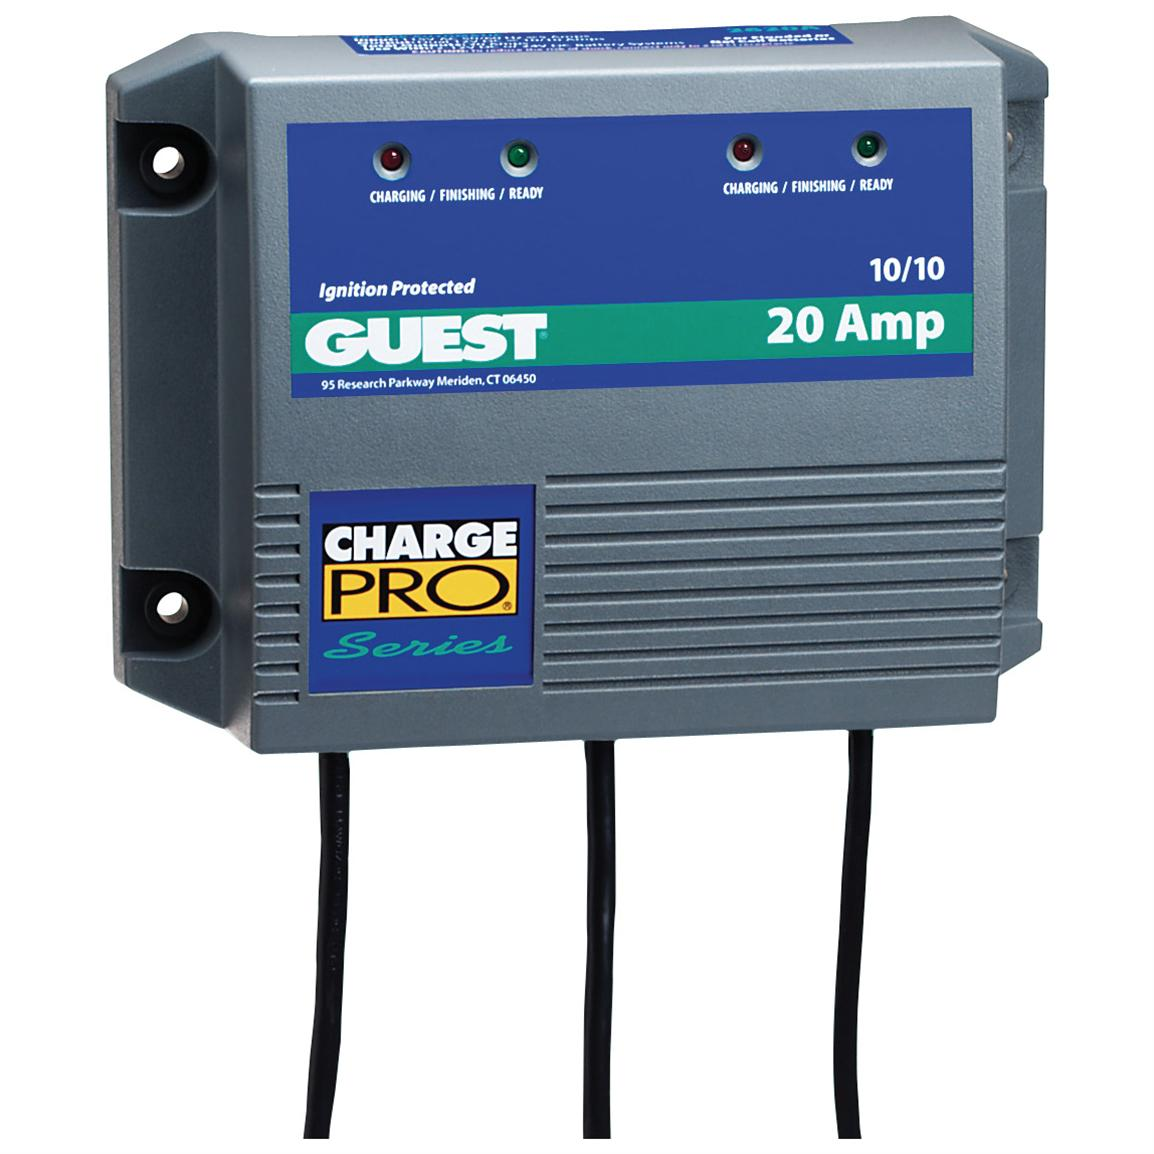 Guests Charger Pro On-Board Charger Model 2620A